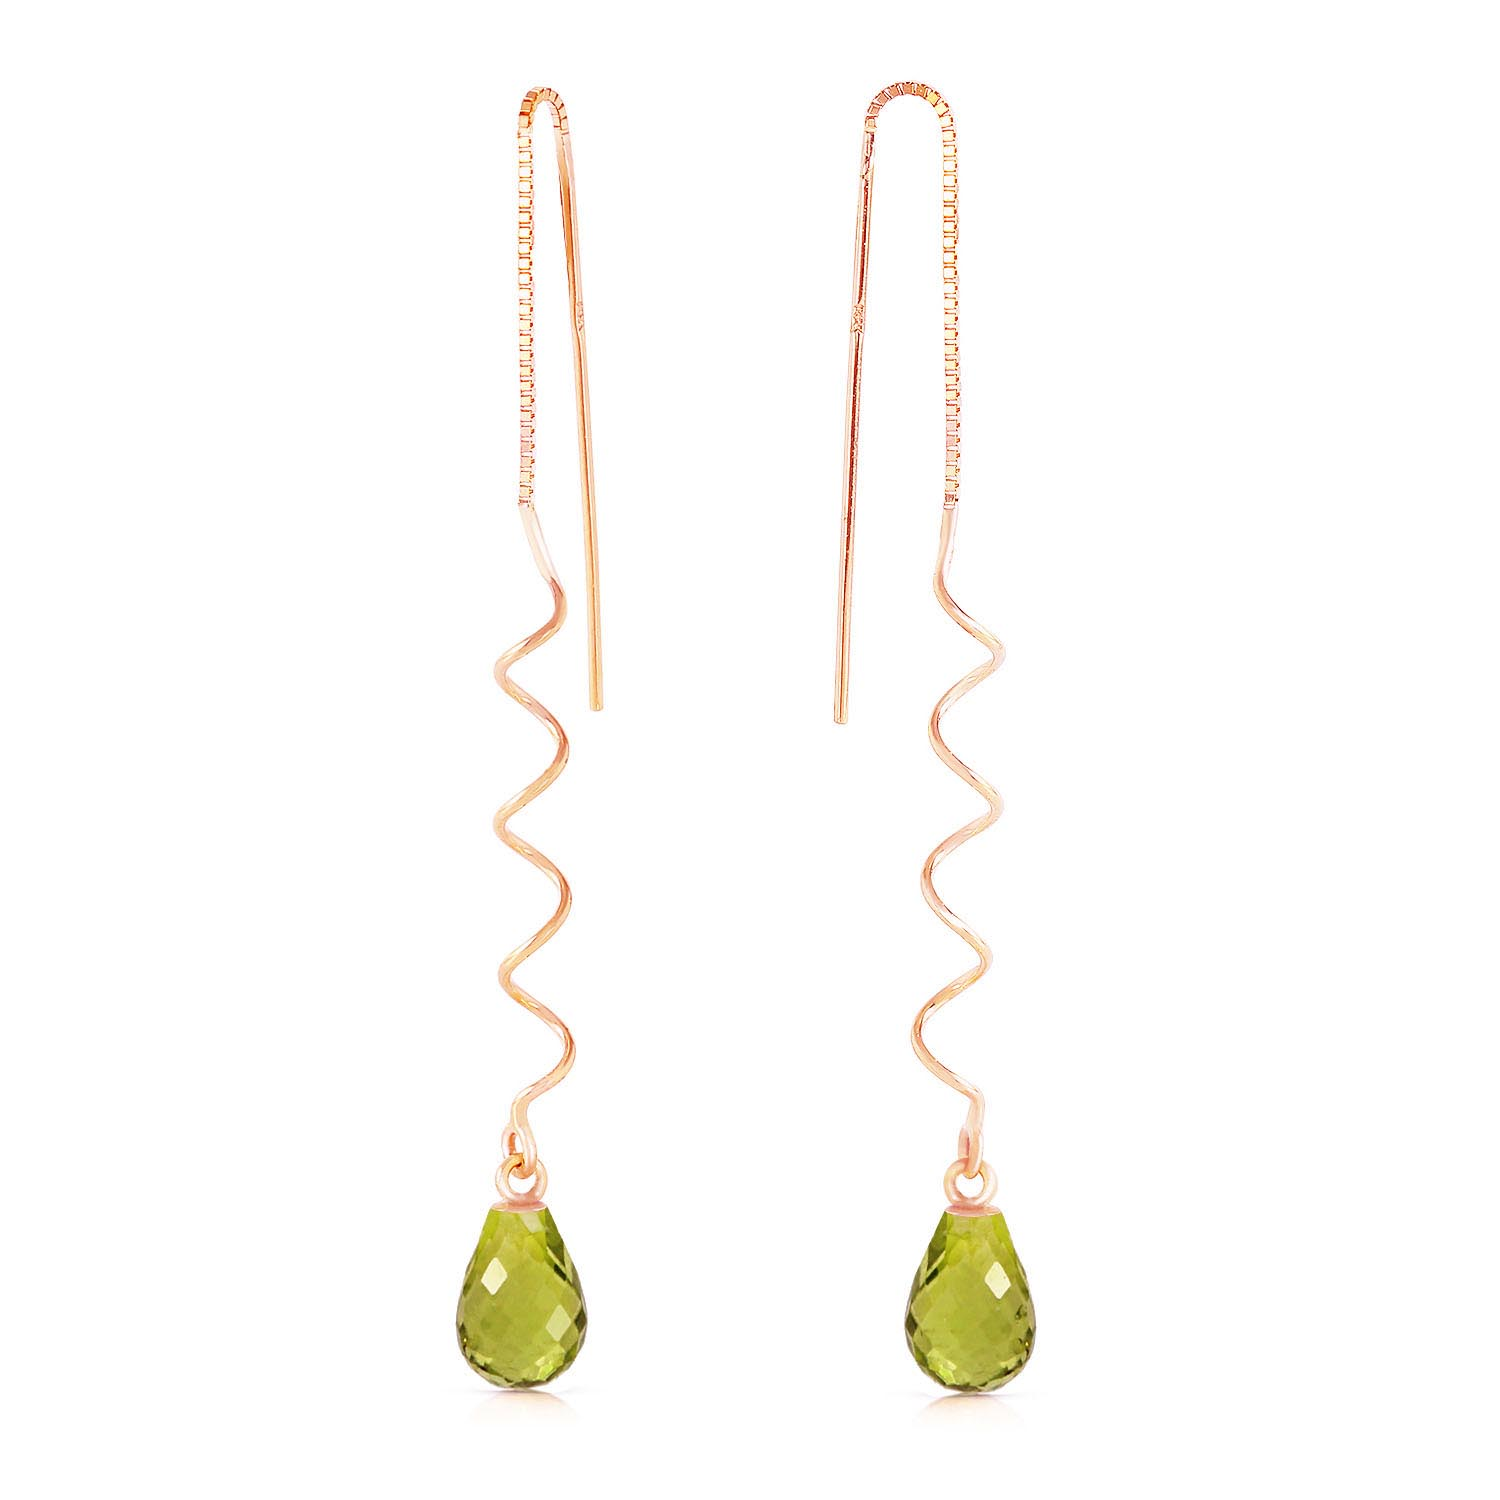 Peridot Spiral Scintilla Briolette Earrings 3.3ctw in 9ct Rose Gold